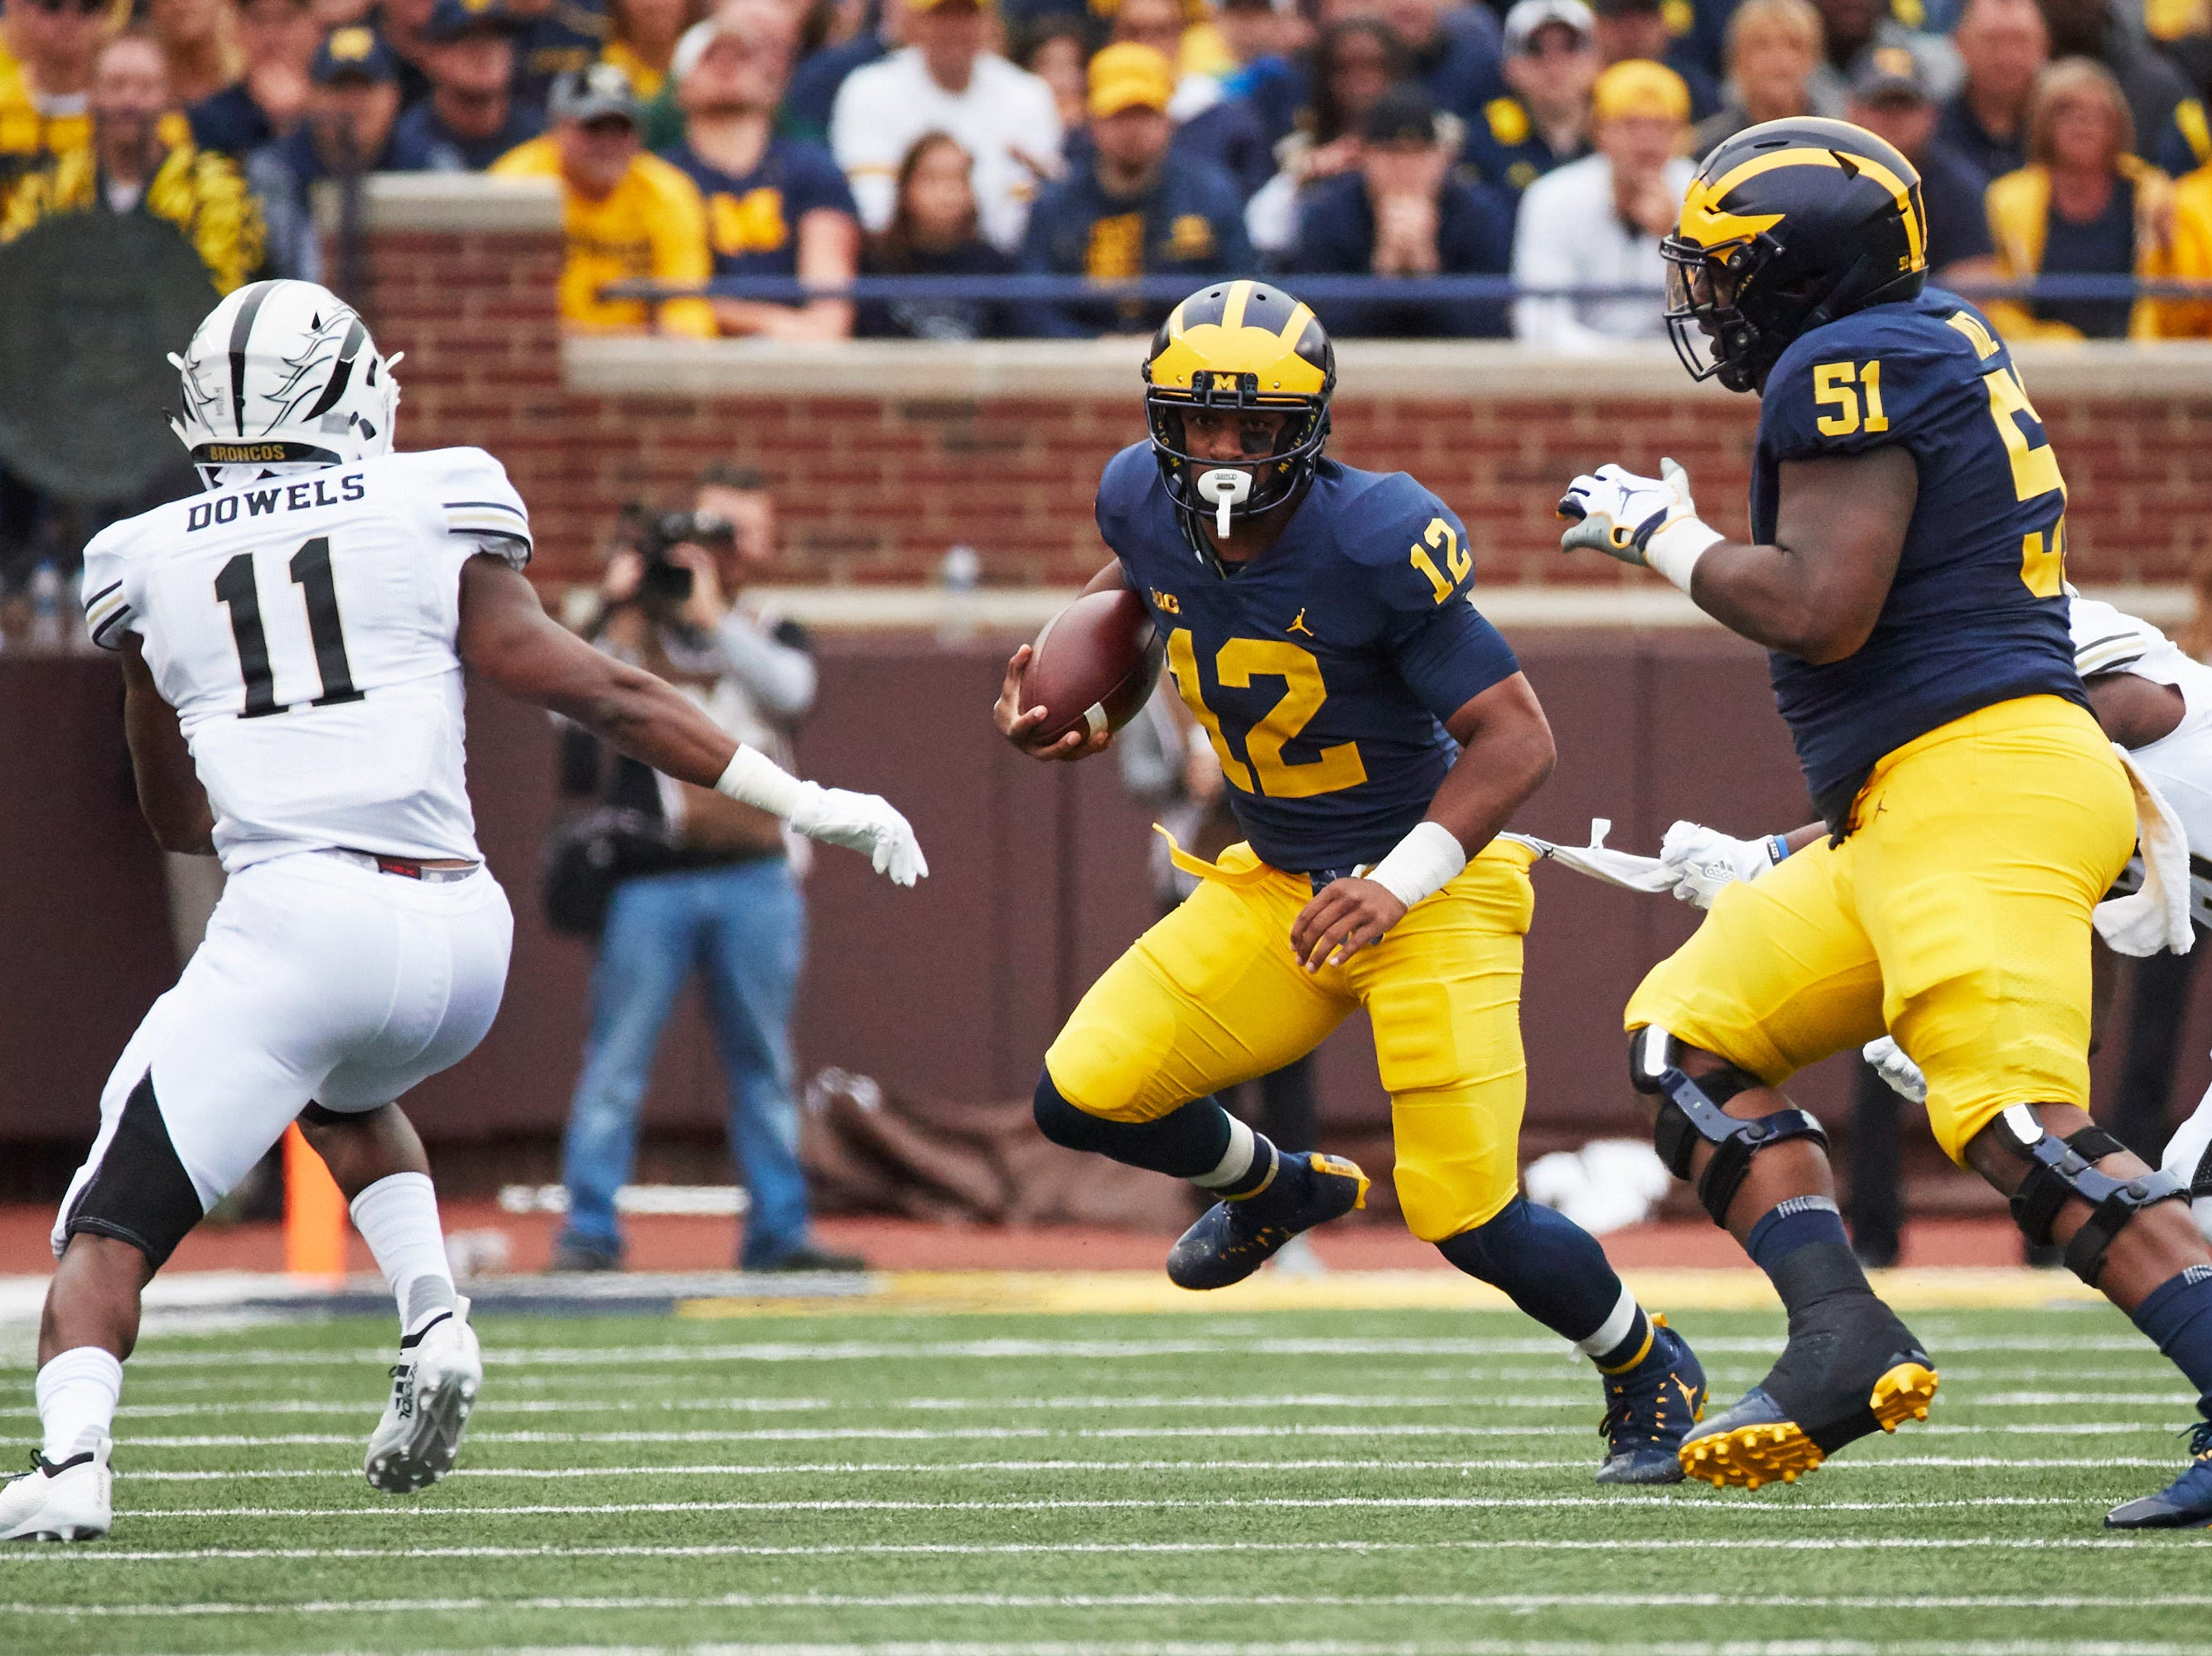 Sep 8, 2018; Ann Arbor, MI, USA; Michigan Wolverines running back Chris Evans (12) runs the bases at Western Michigan Broncos defensive back Juwan Dowels (11) in the first half at Michigan Stadium. Mandatory Credit: Rick Osentoski-USA TODAY Sports